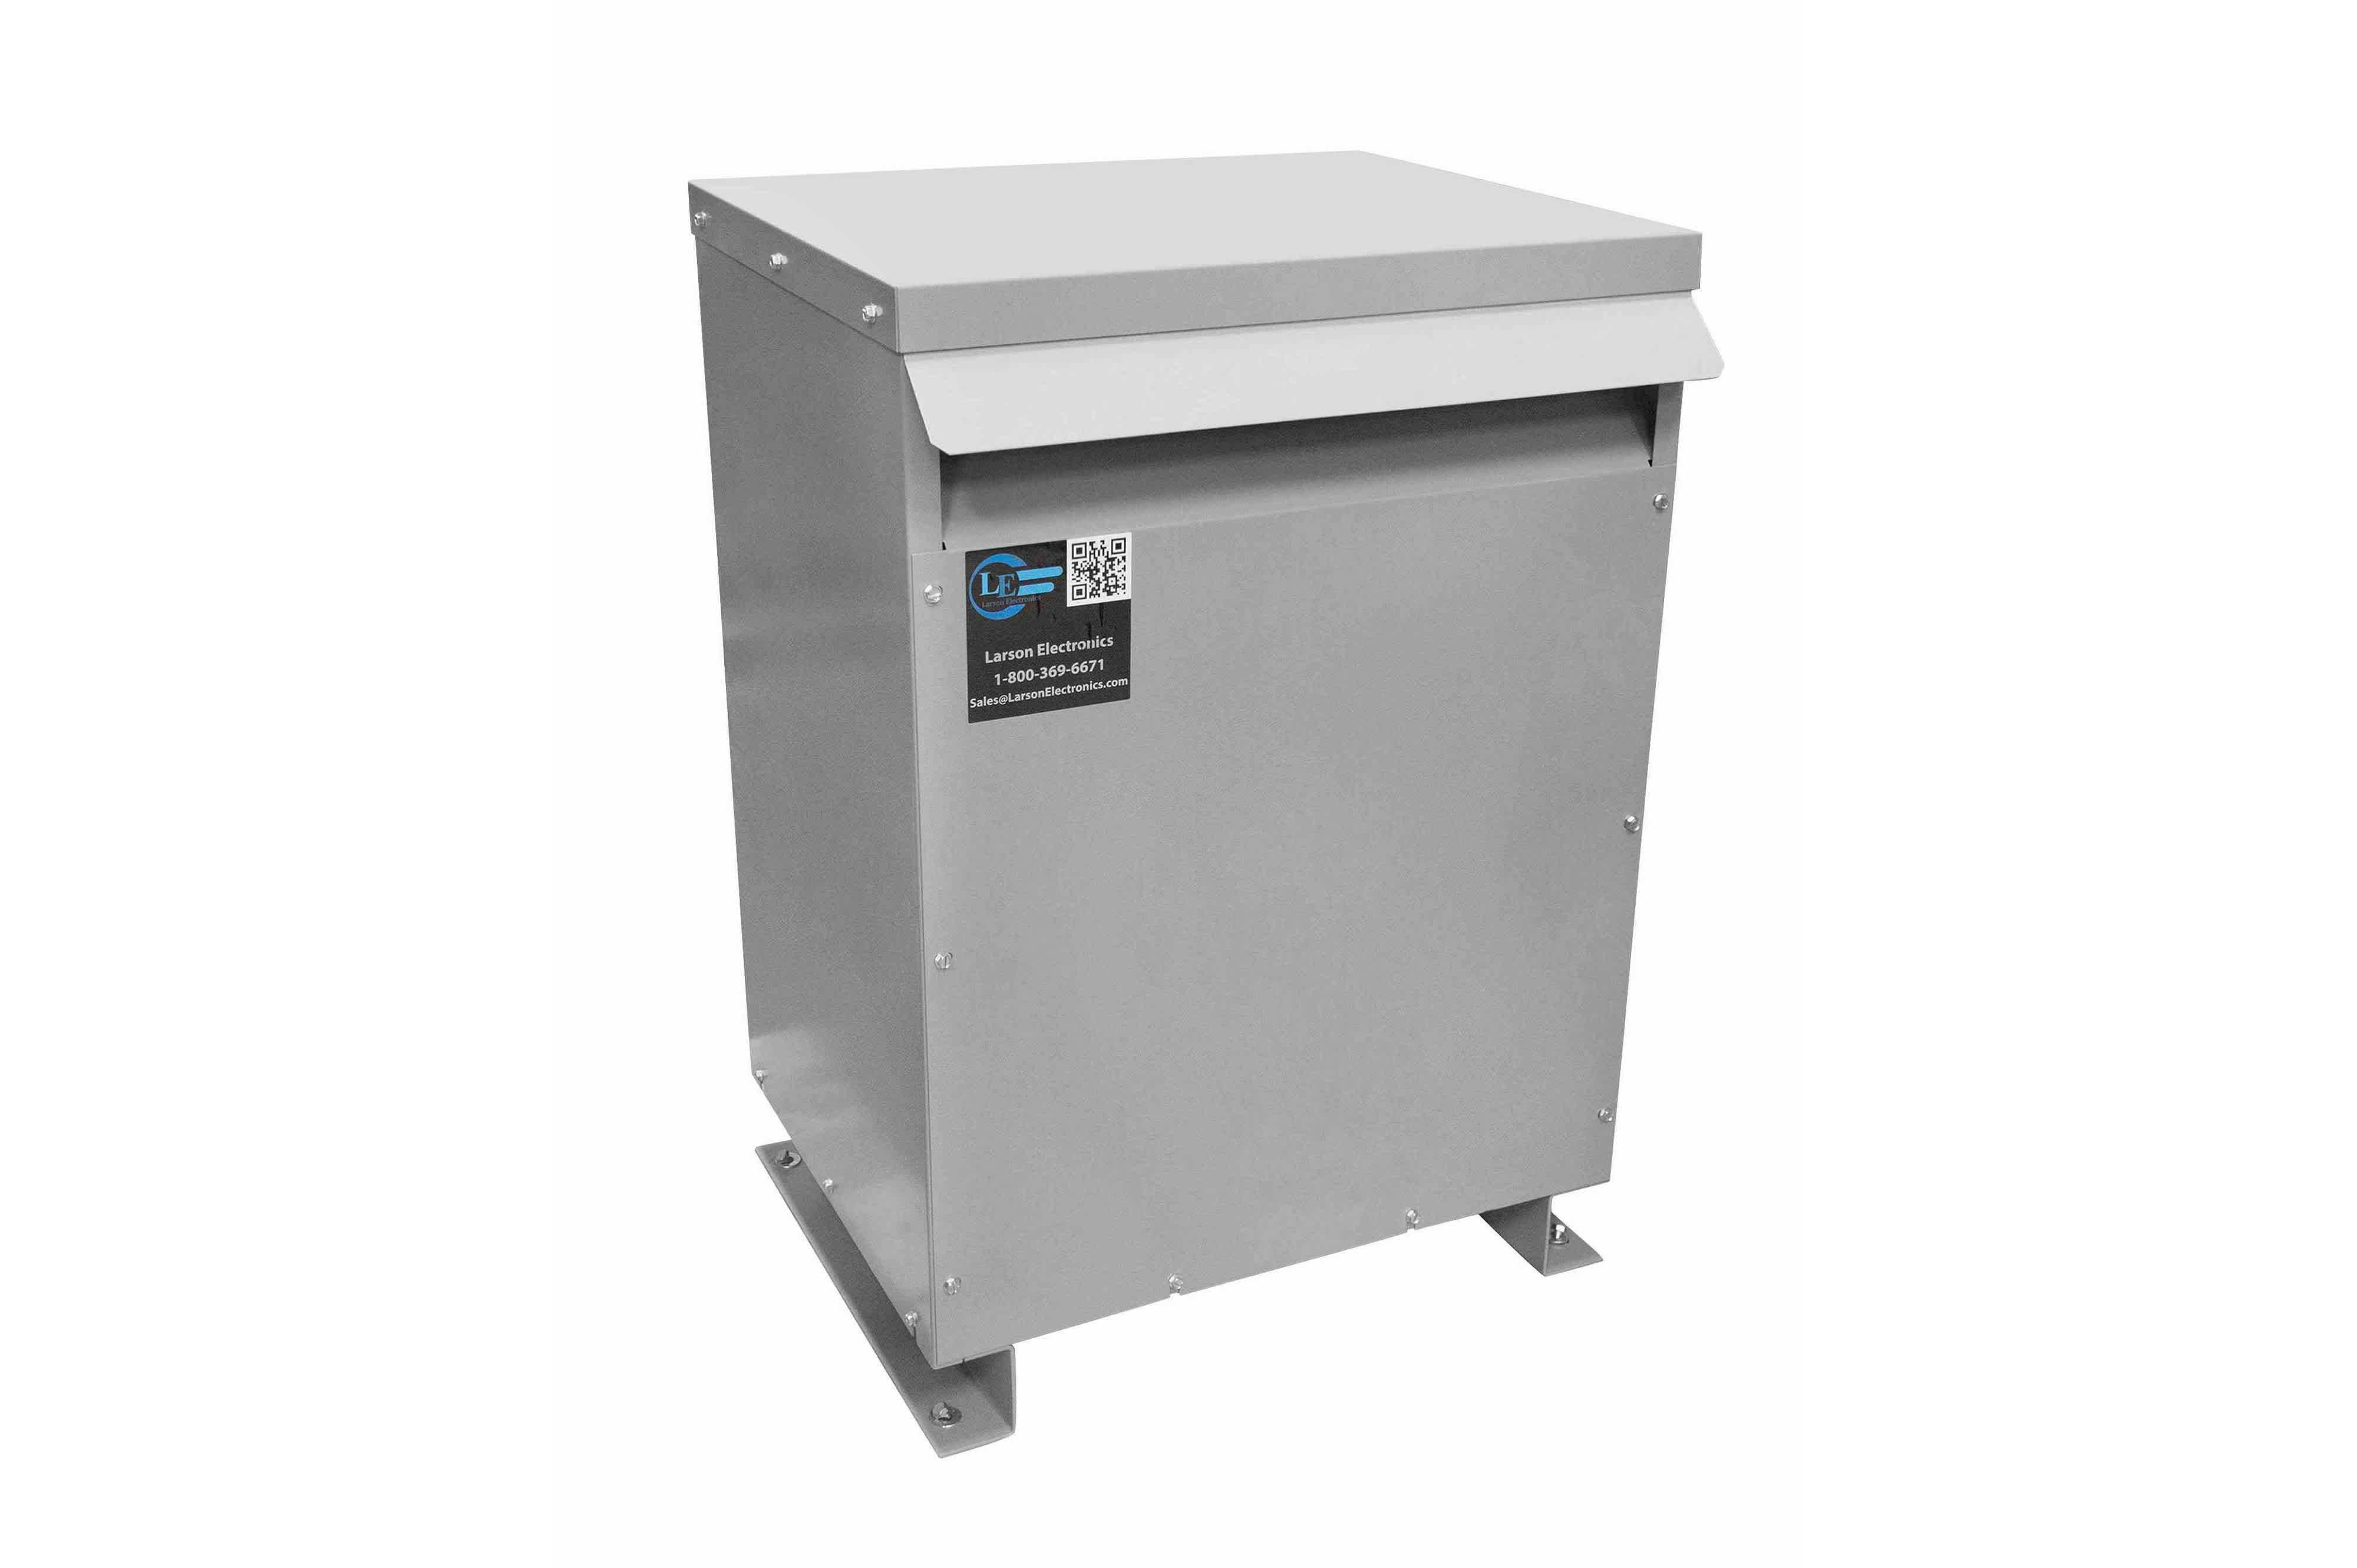 9 kVA 3PH Isolation Transformer, 480V Delta Primary, 600V Delta Secondary, N3R, Ventilated, 60 Hz